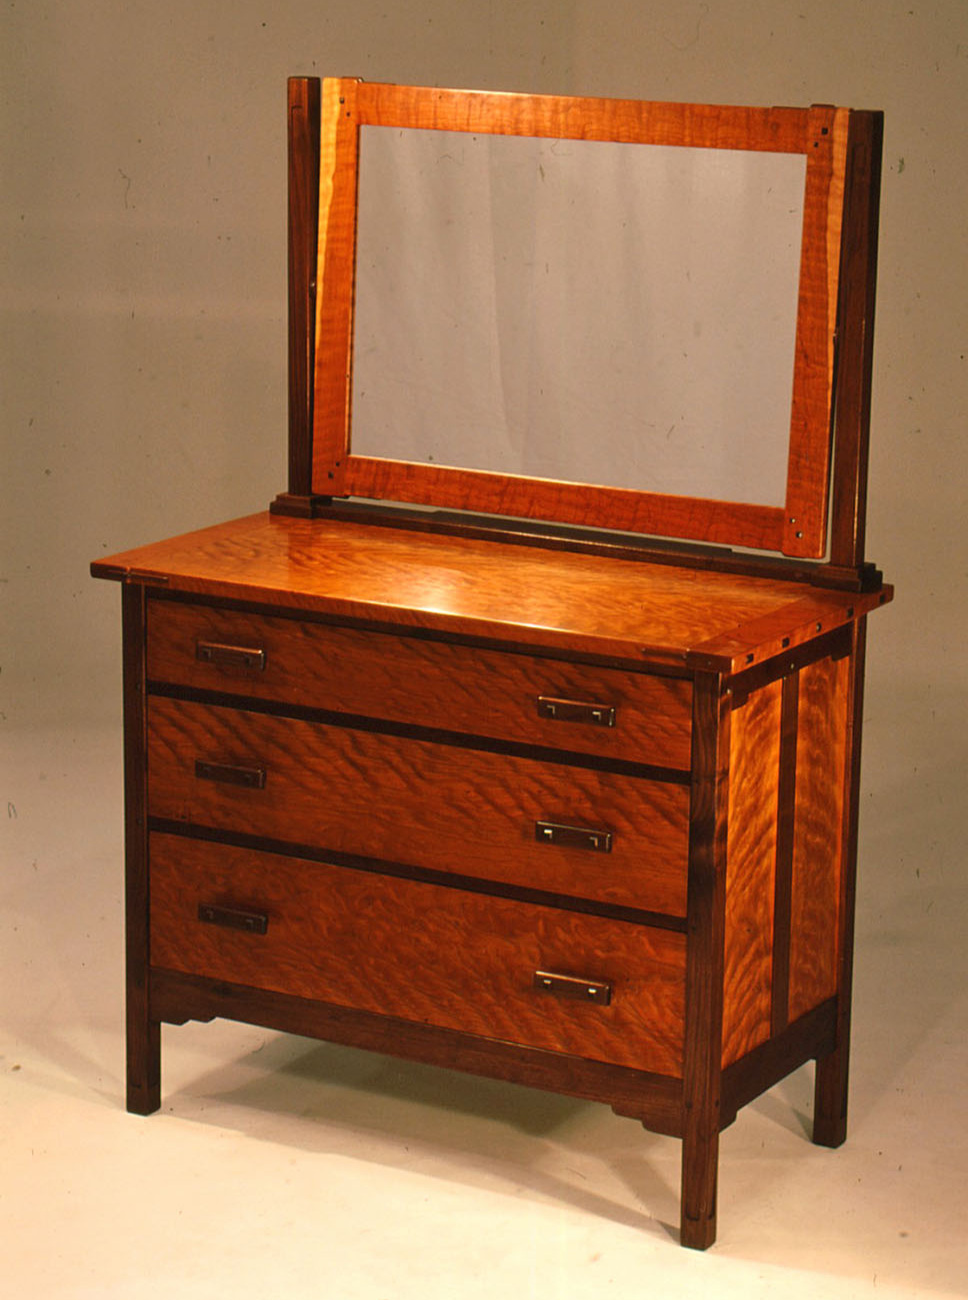 Walnut and Figured Cherry 3-Drawer Dresser with Mirror